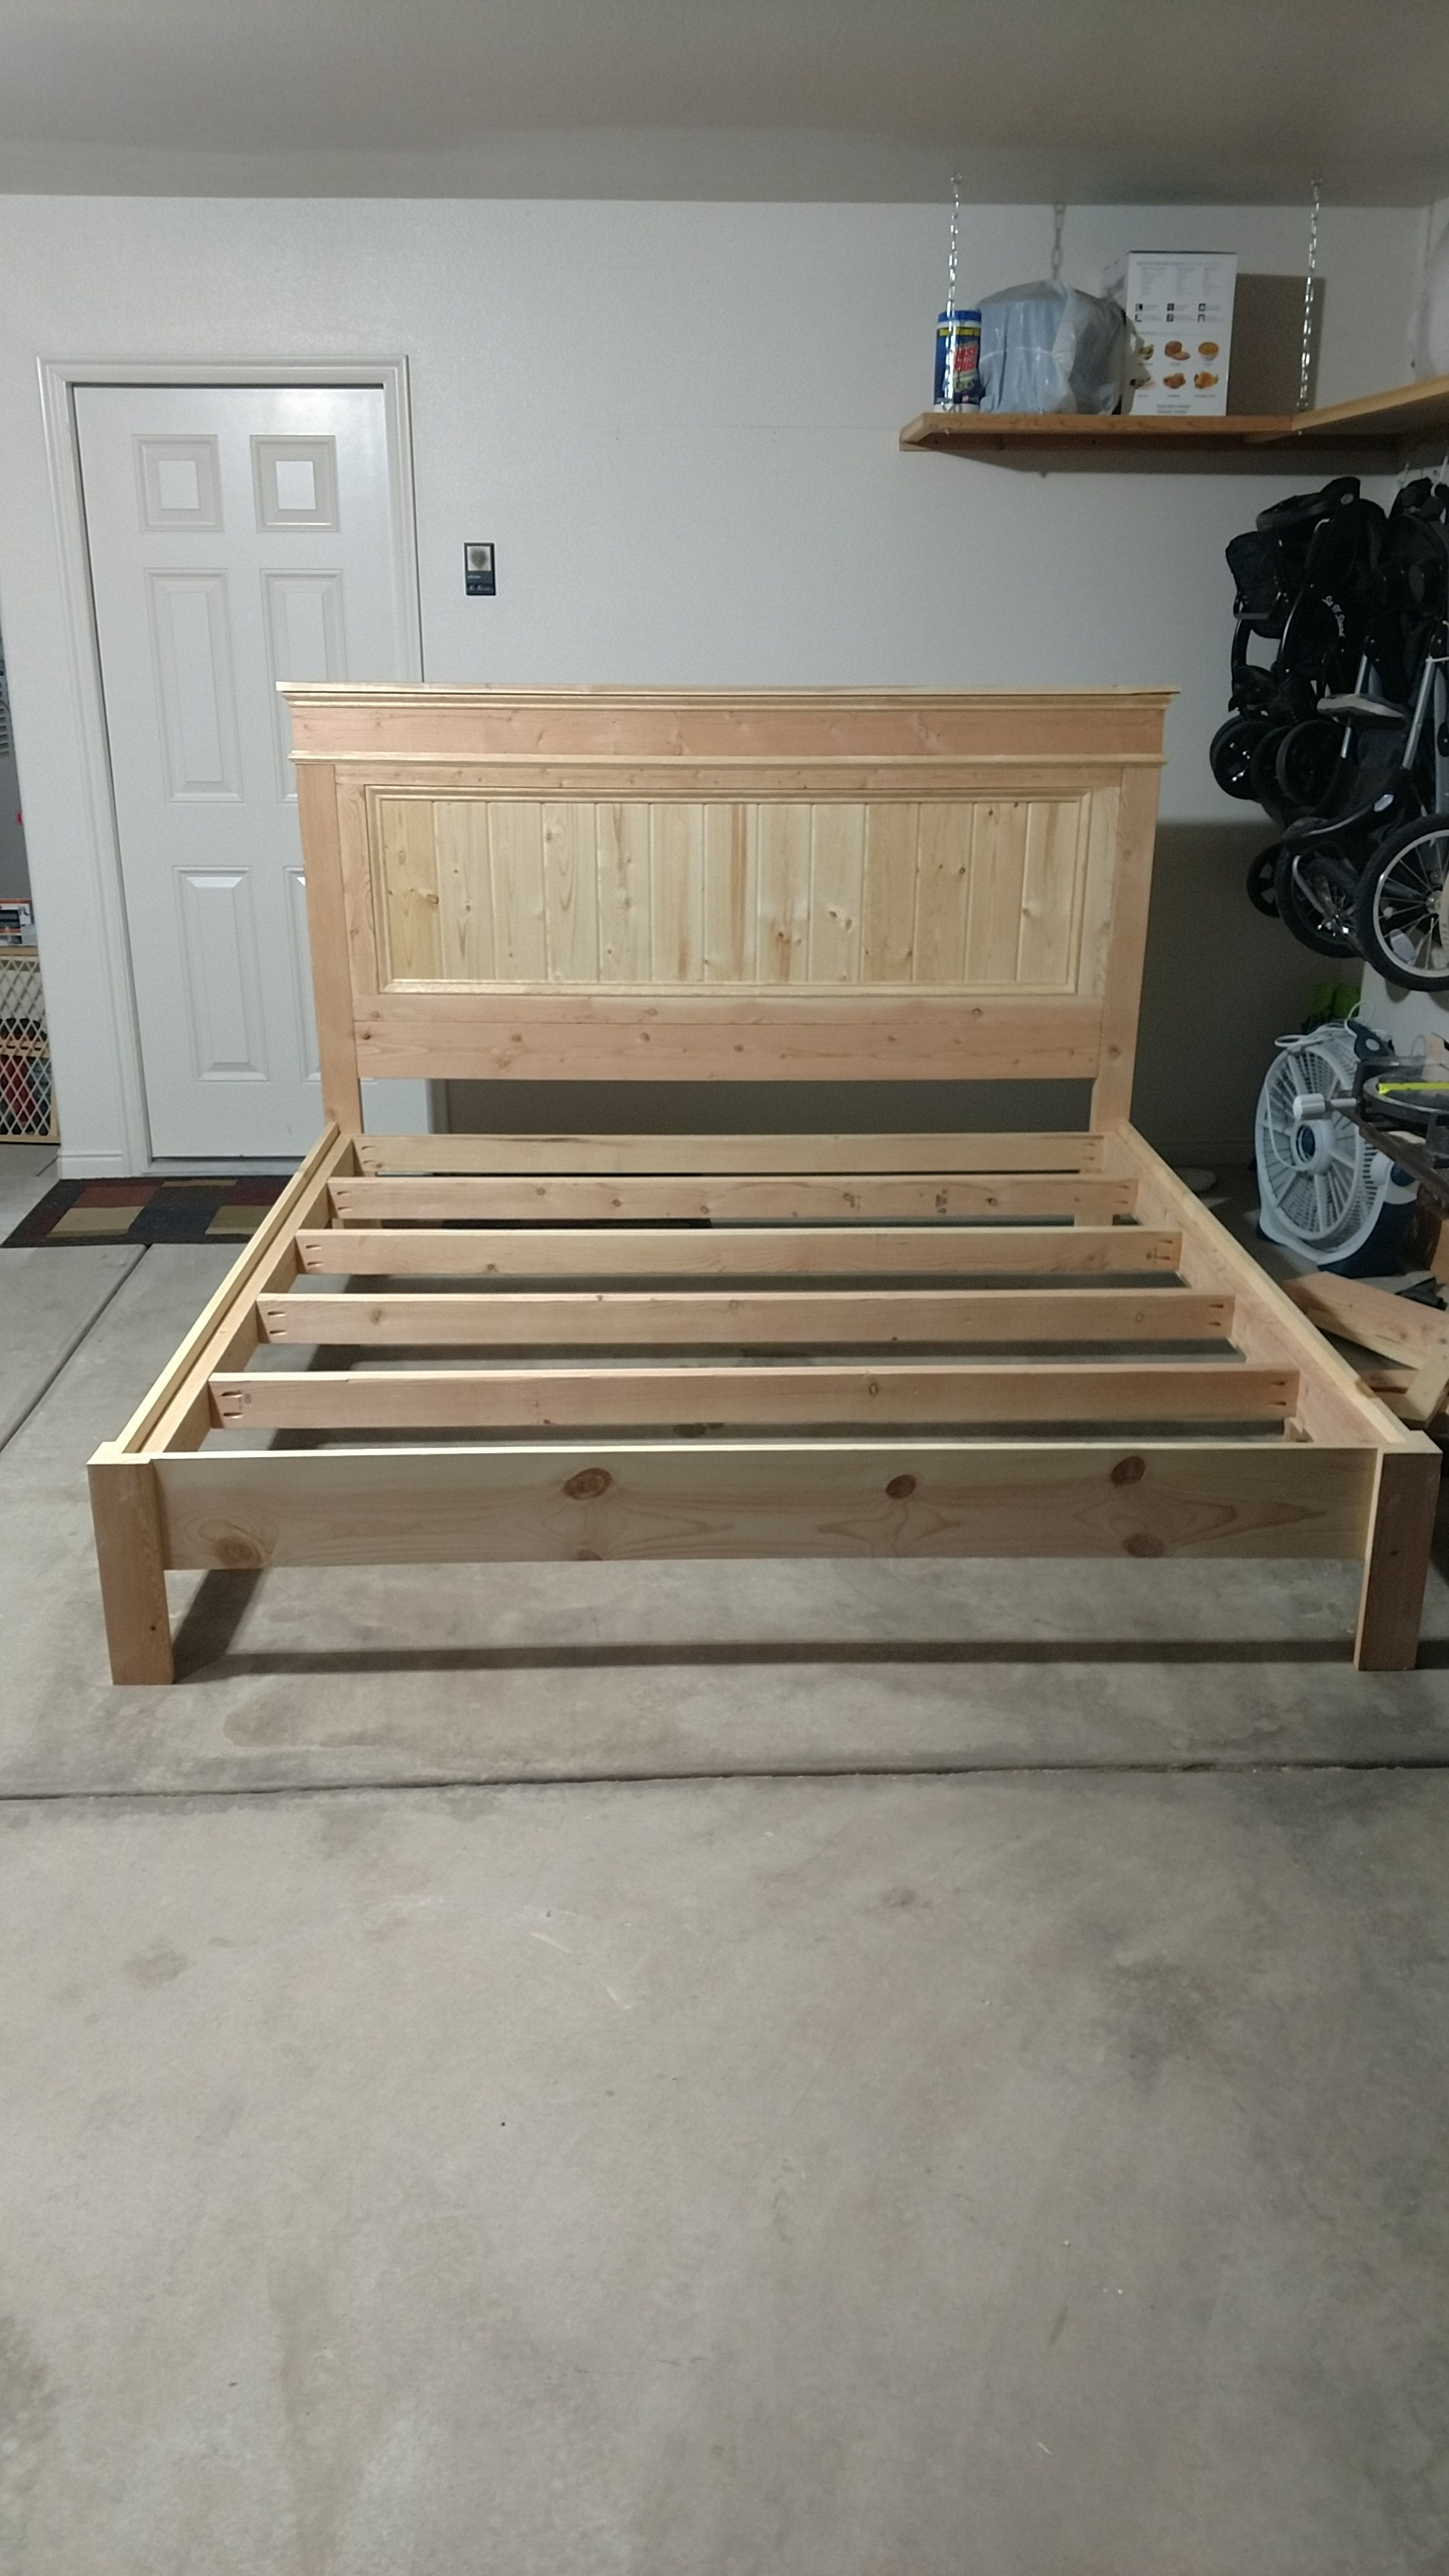 king bed frame with headboard wood on ana white king bed frame diy projects diy king bed frame king size bed frame diy wood bed frame diy ana white king bed frame diy